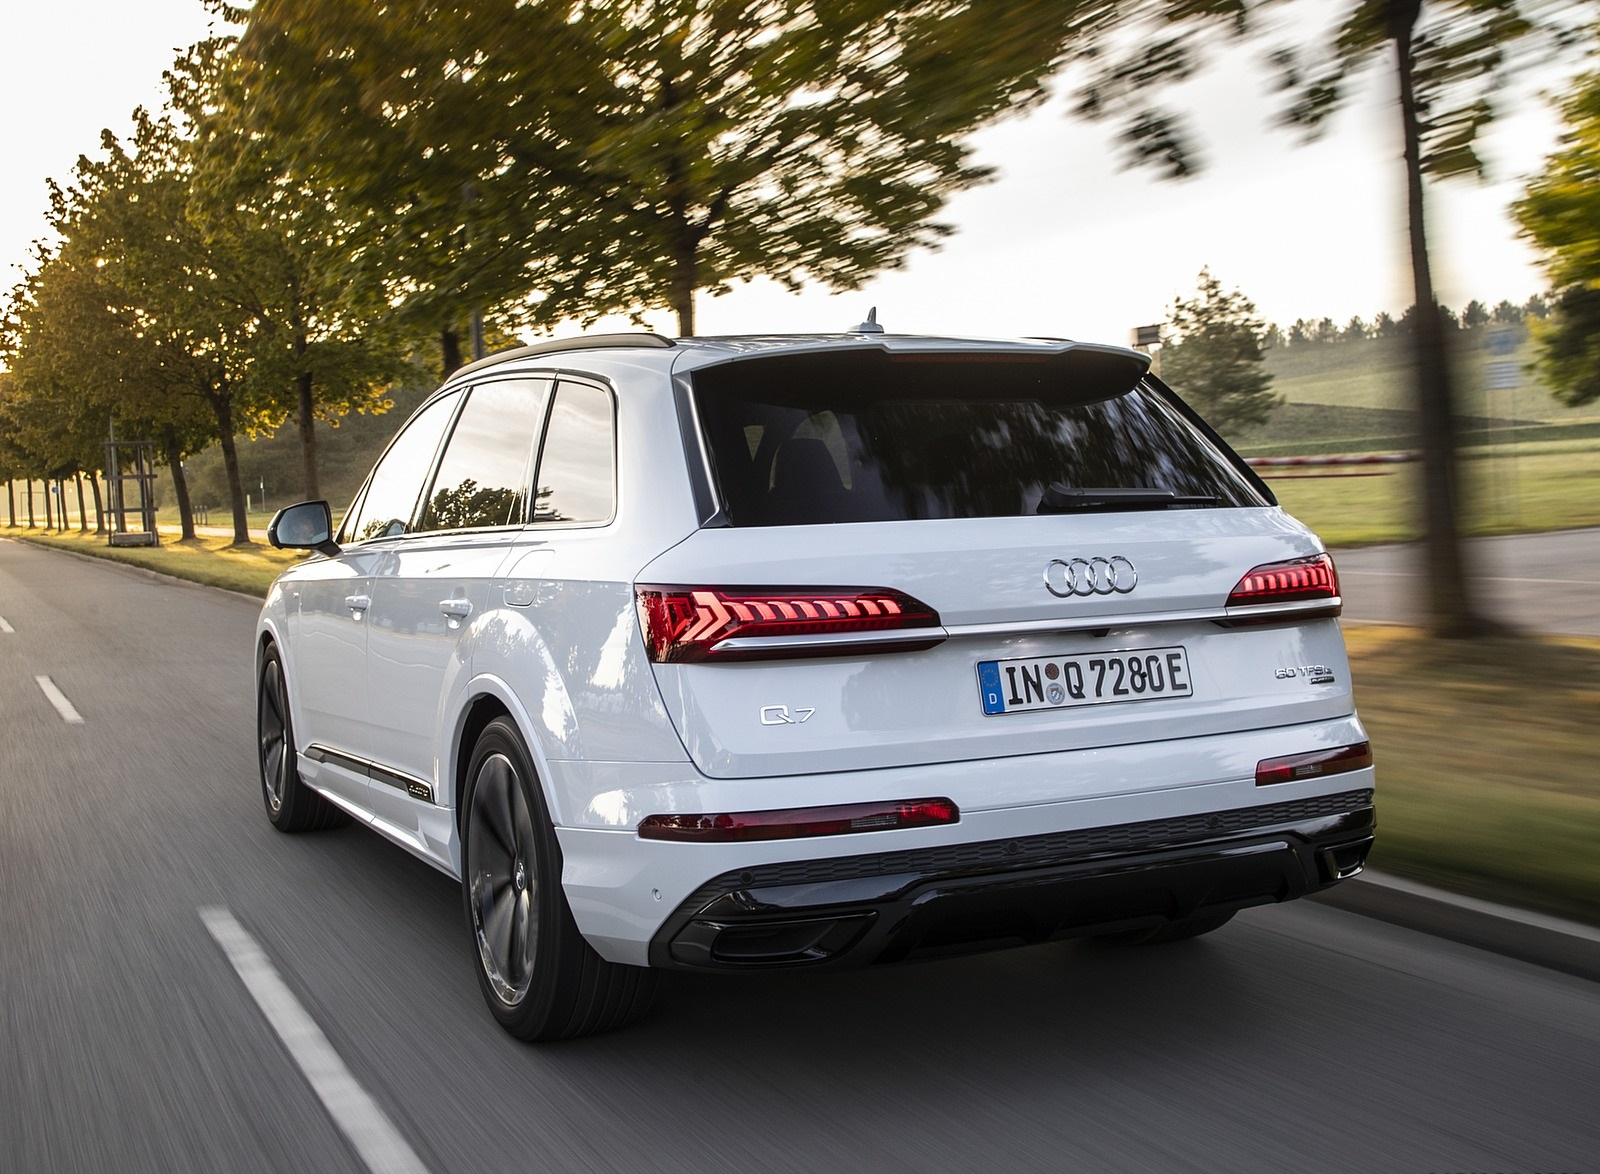 2020 Audi Q7 TFSI e quattro Plug-In Hybrid (Color: Glacier White) Rear Three-Quarter Wallpapers (7)